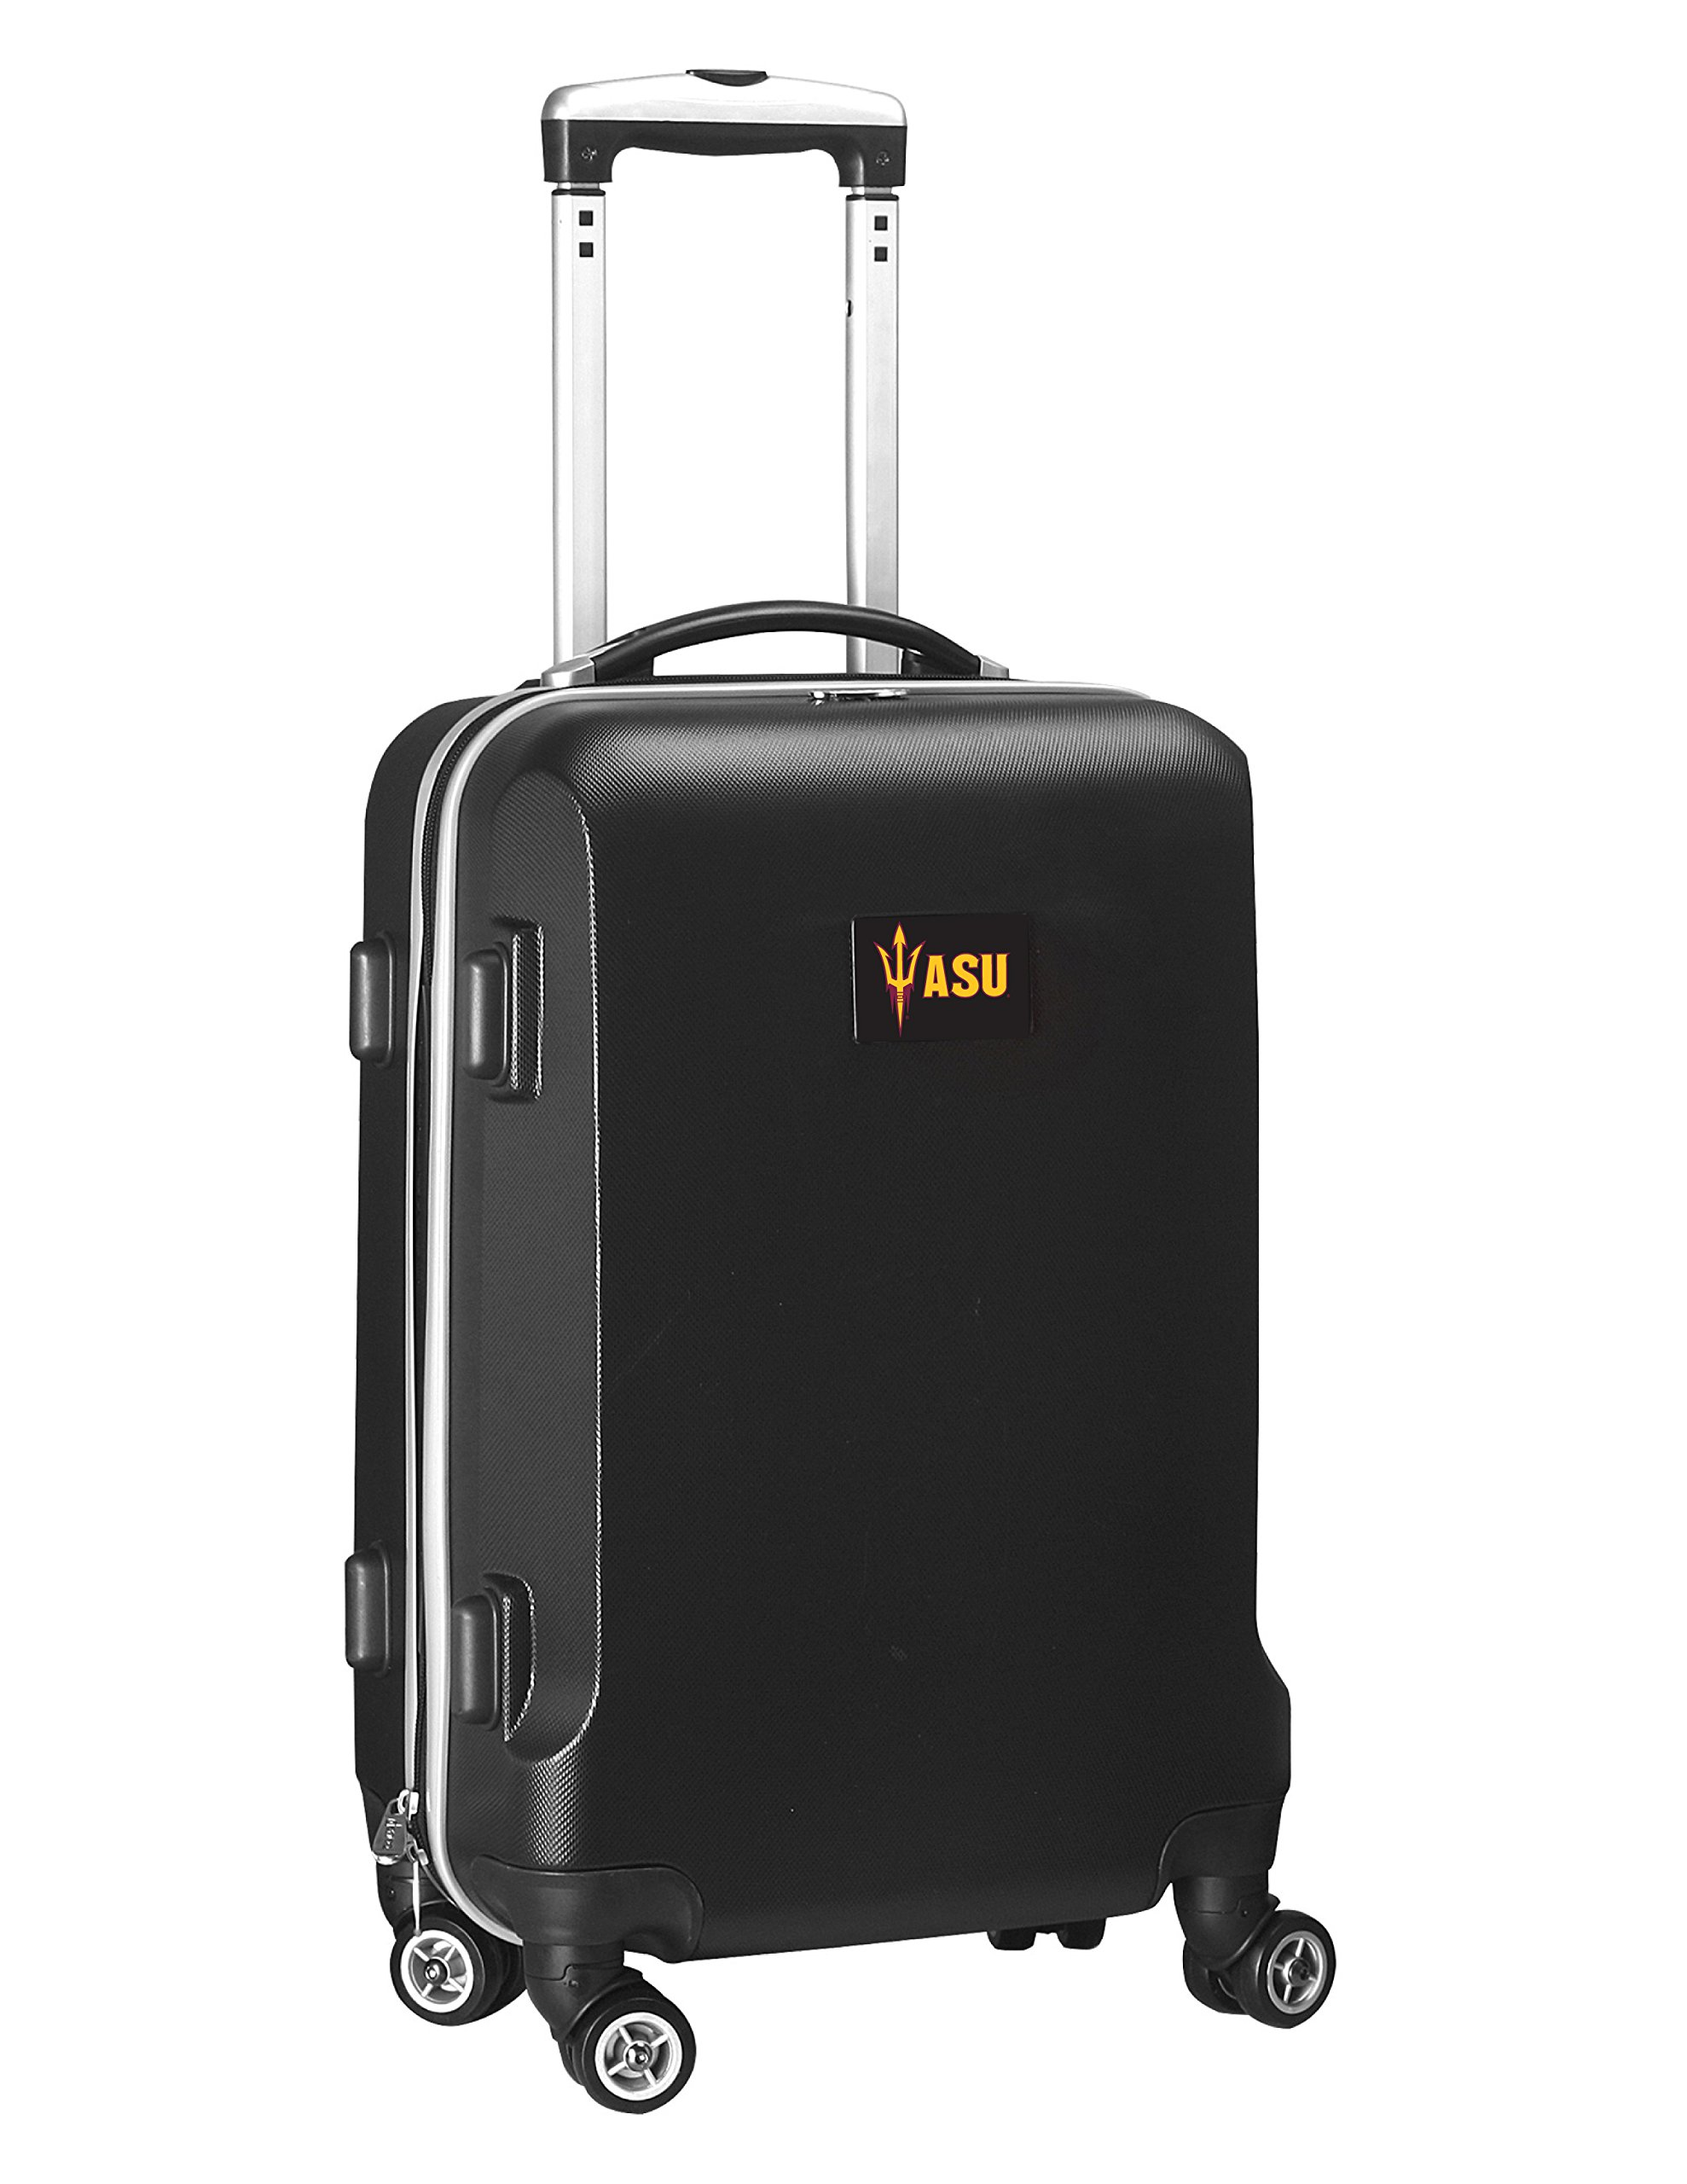 NCAA Arizona State Sun Devils Carry-On Hardcase Luggage Spinner, Black